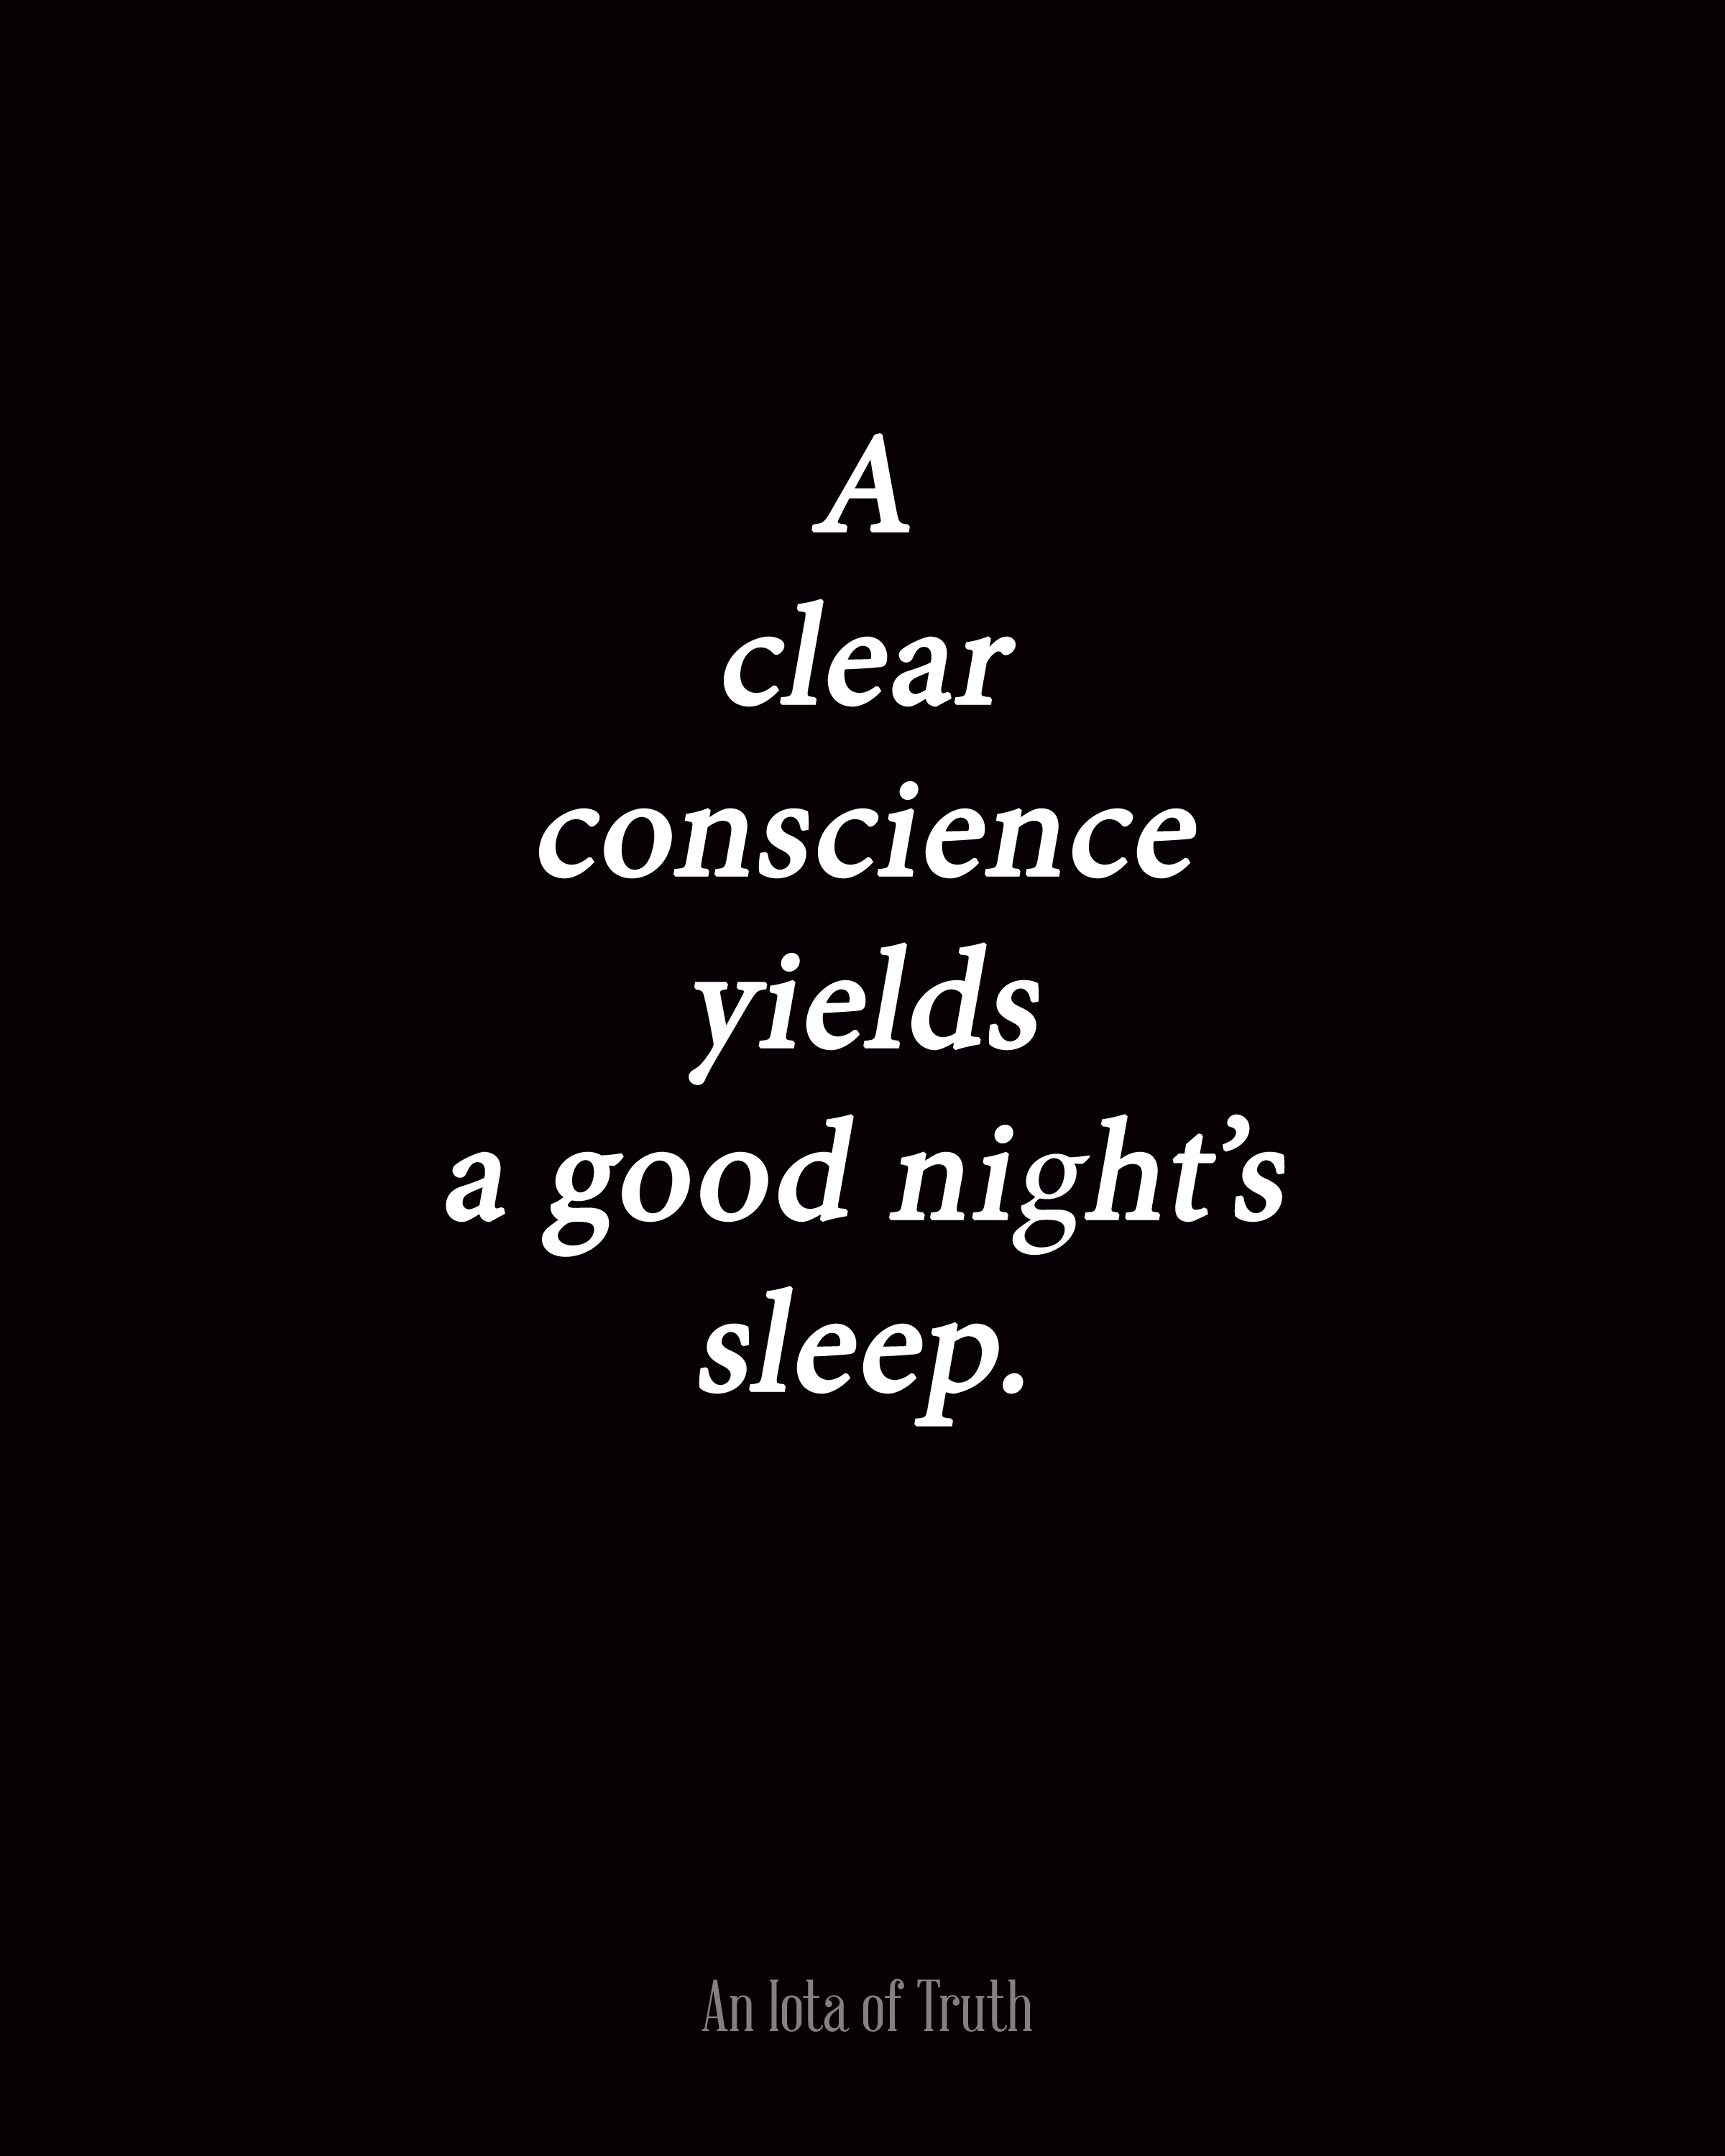 Quotes About Love: Good Conscience Quotes. QuotesGram